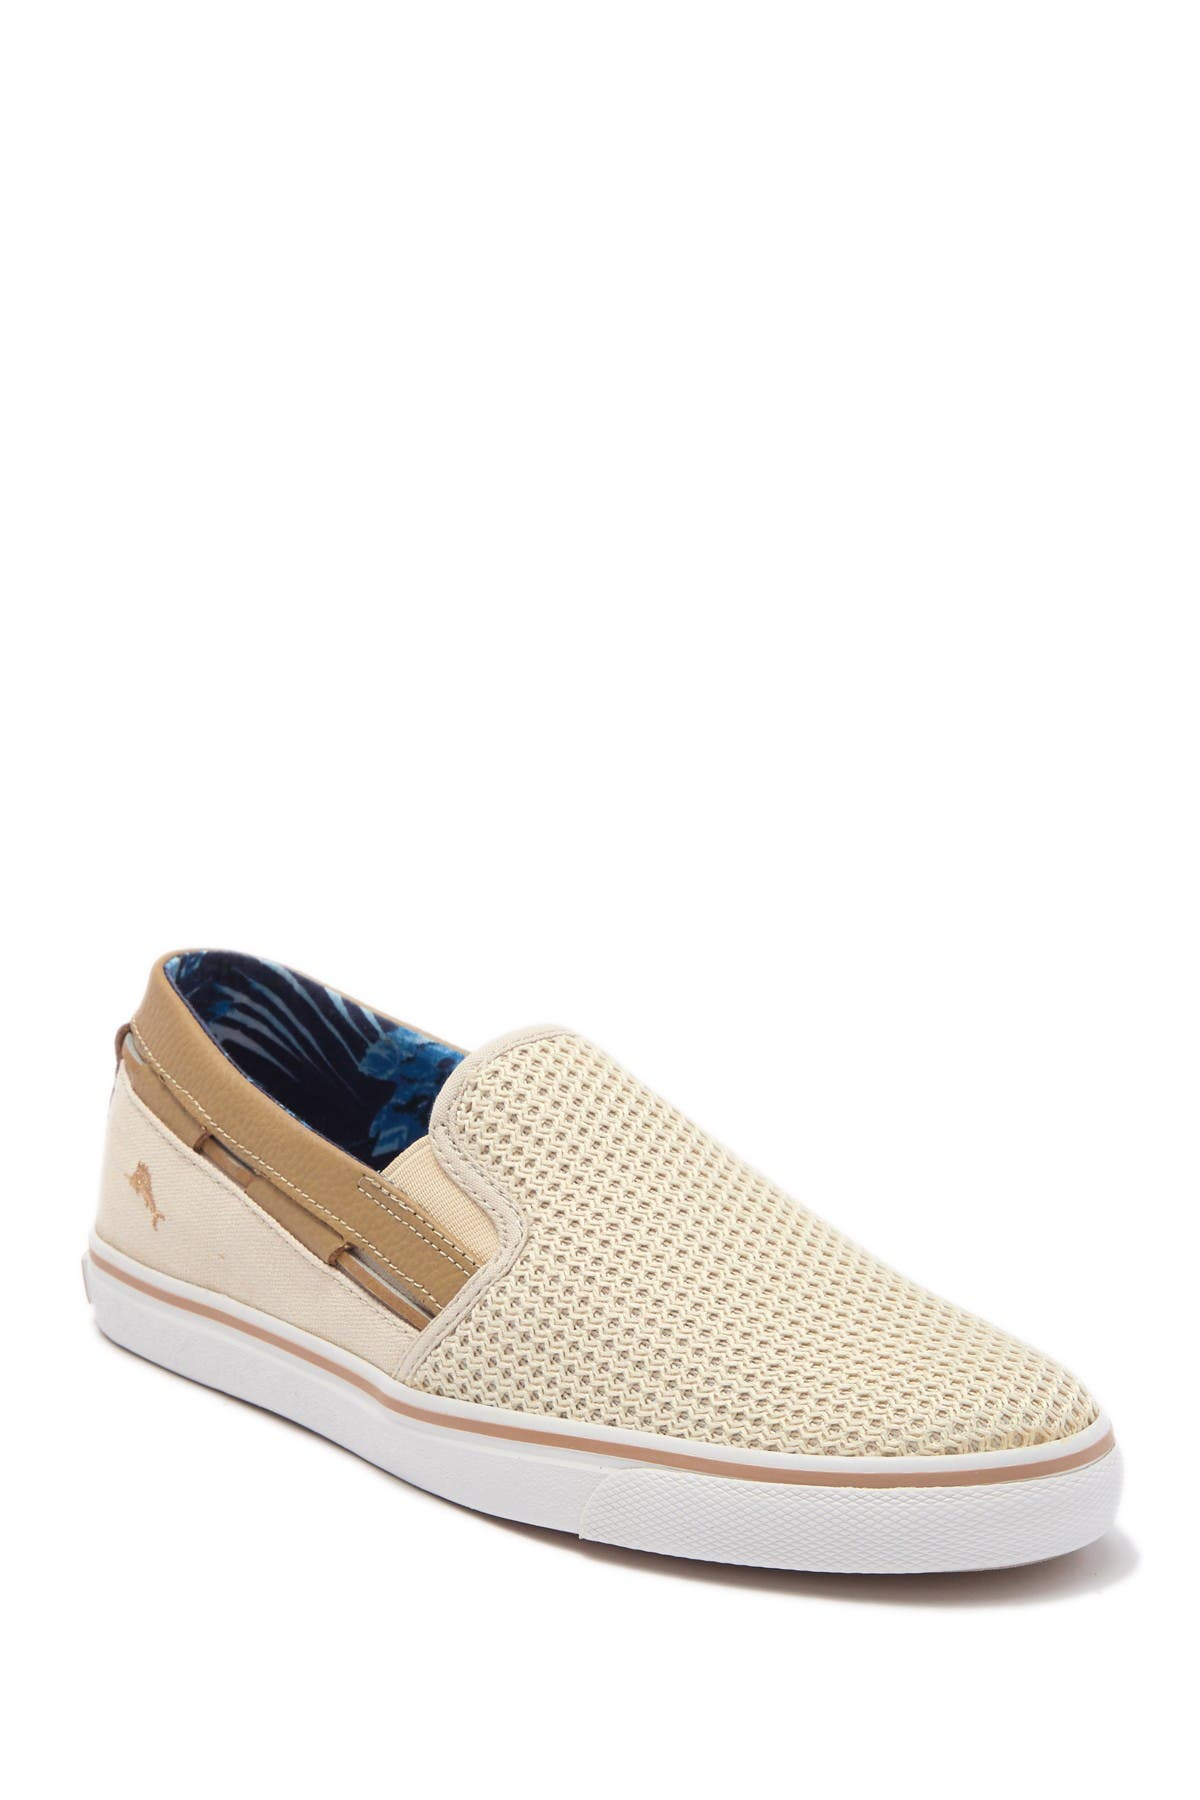 Image of Tommy Bahama Jaali Perforated Slip-On Sneaker